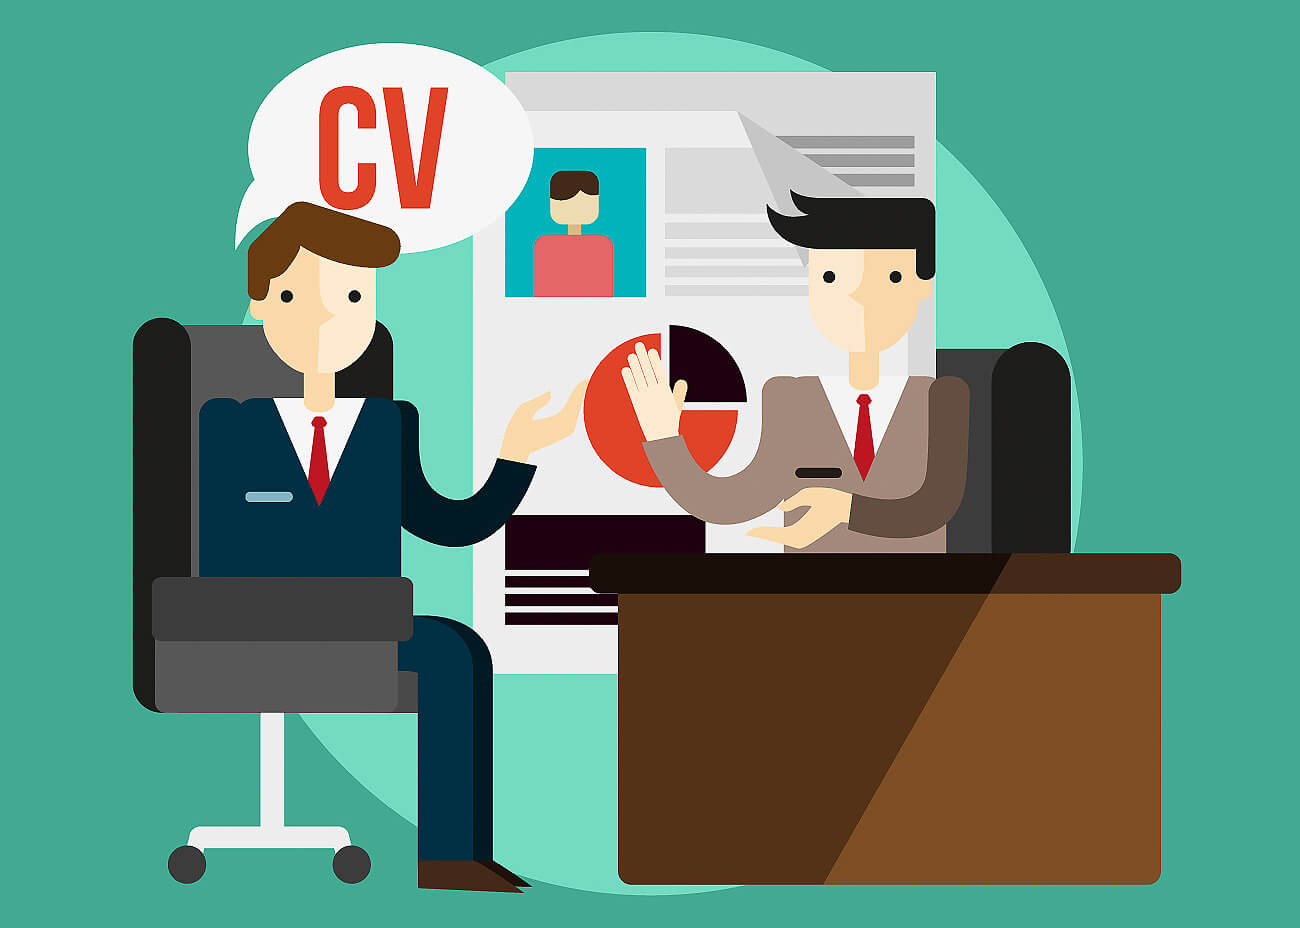 interviews tips These super simple interview tips can help you nail the face-to-face meeting and snag the job you want learn how to dress, how to close the deal and more.